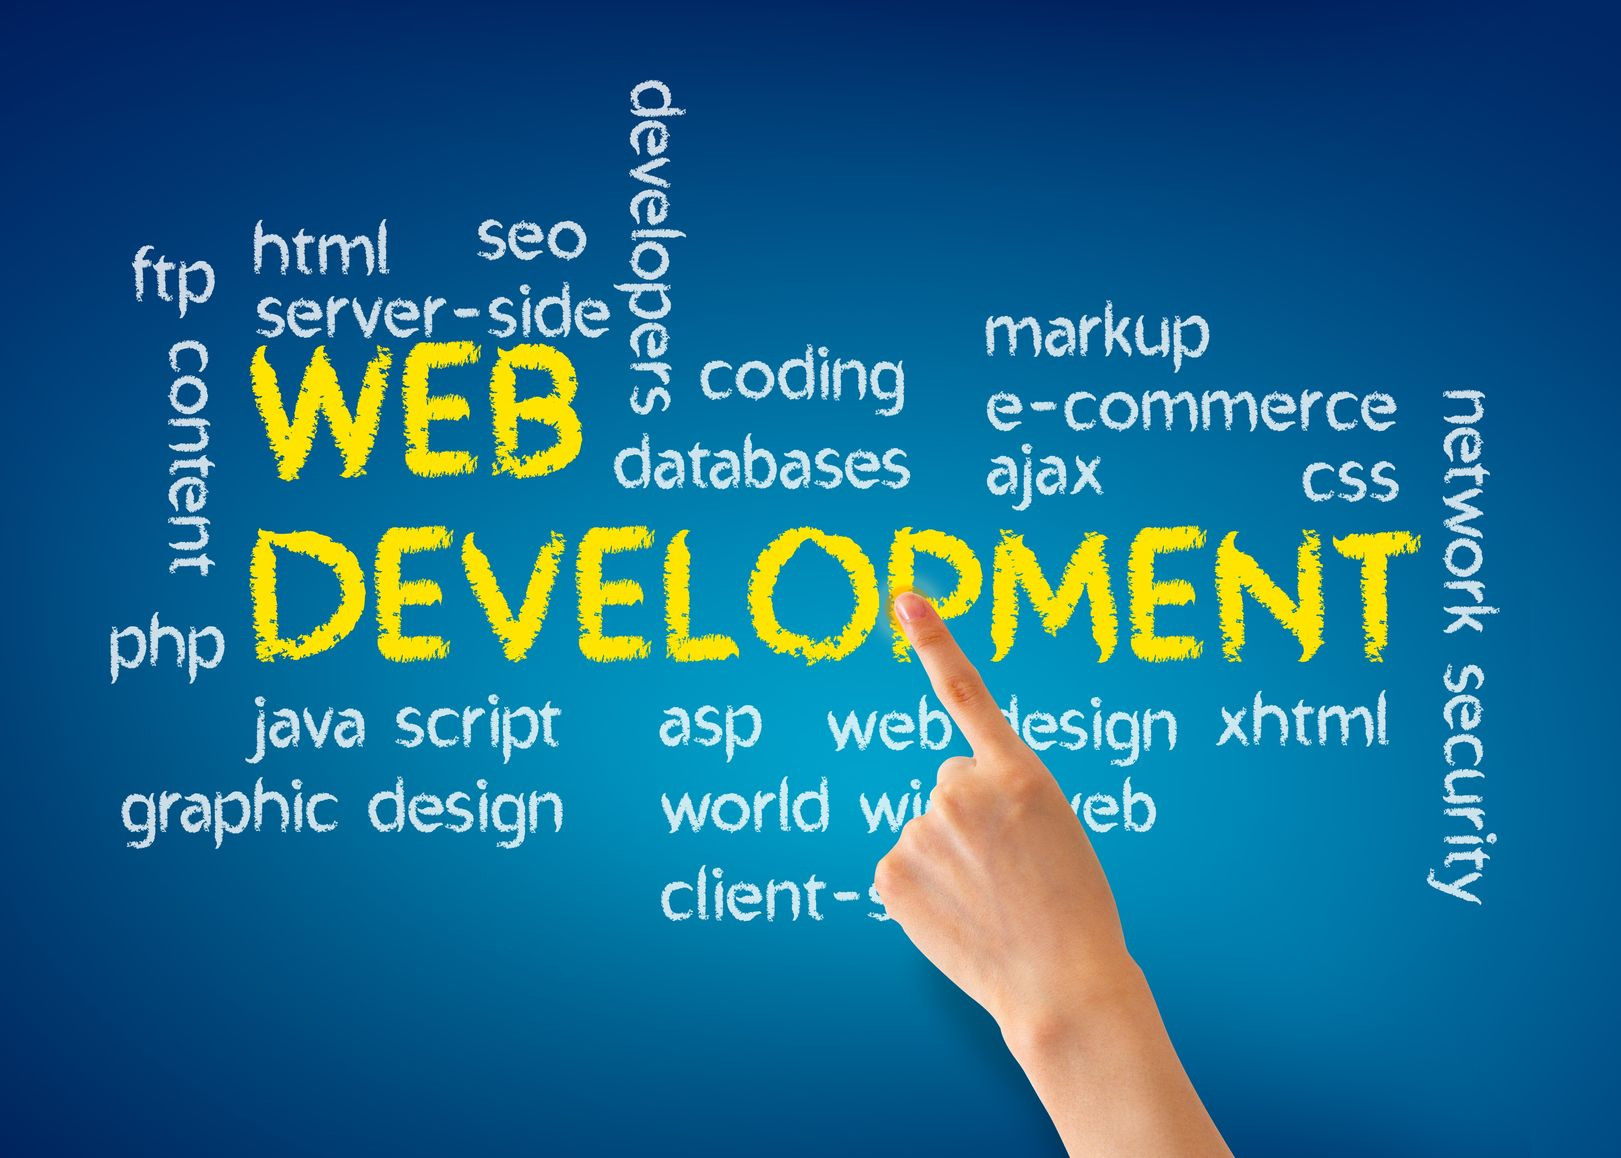 Web-developpment